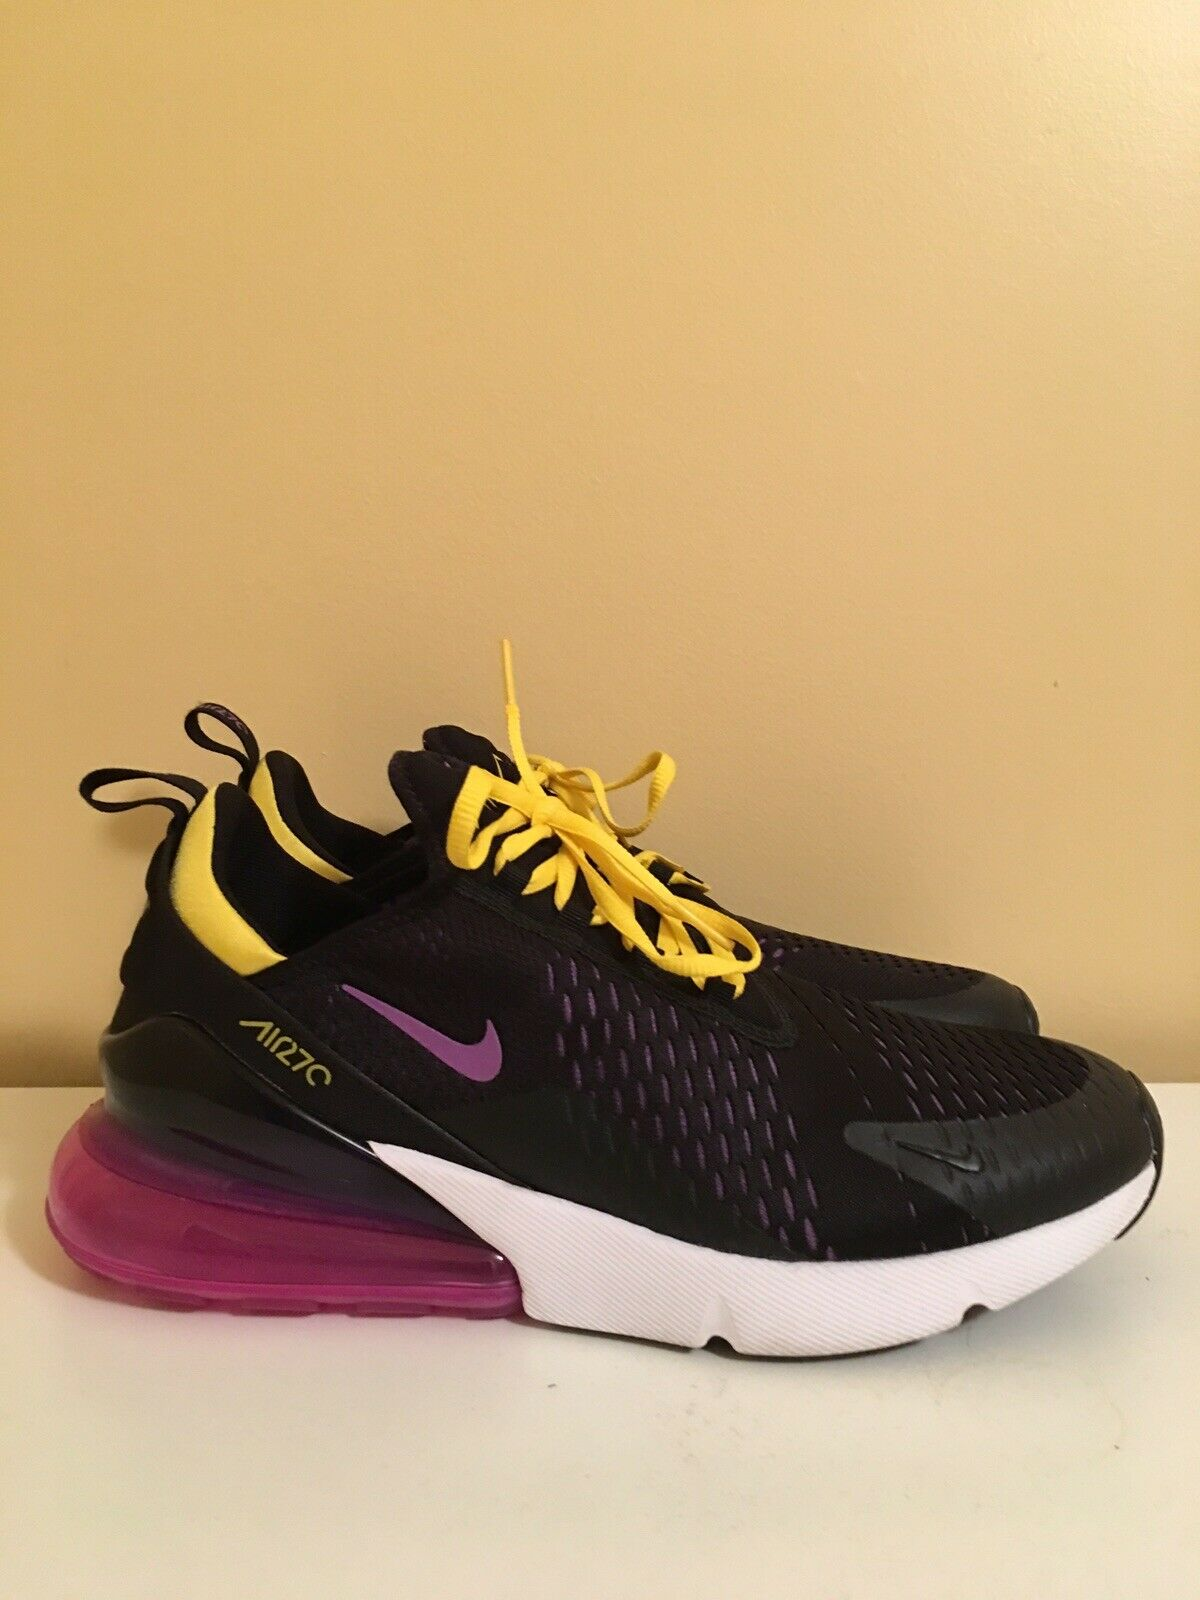 Nike Air Max 270 Hyper Grape Magenta Black Tour Yellow Purple With Box sz 11